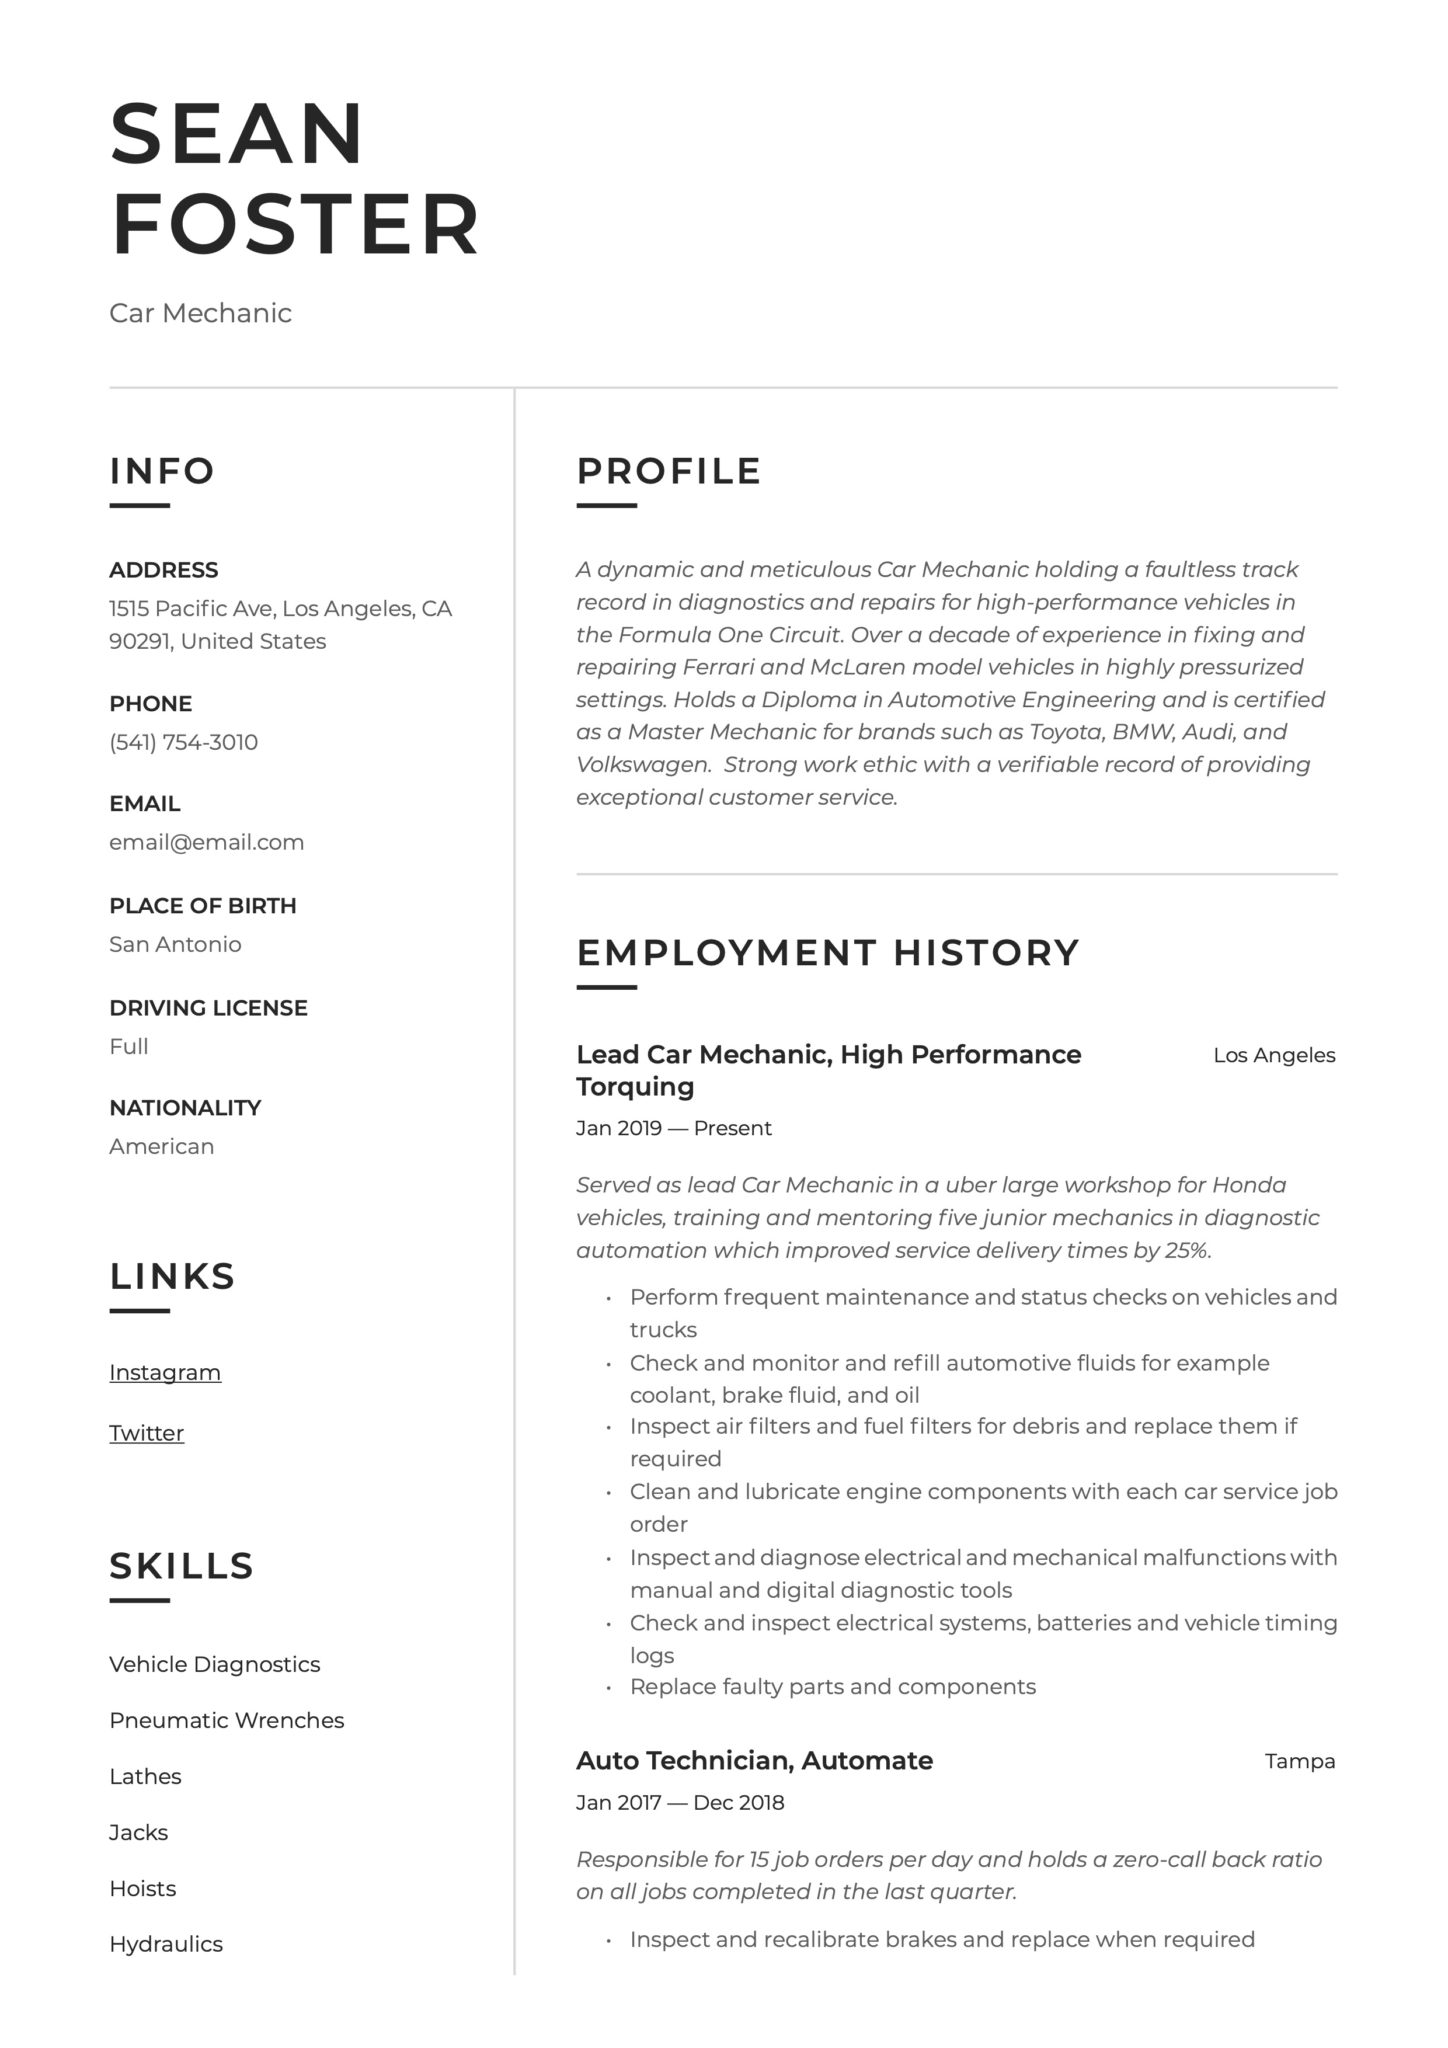 car mechanic resume guide examples automotive technician search scaled qkids istqb Resume Automotive Technician Resume Search